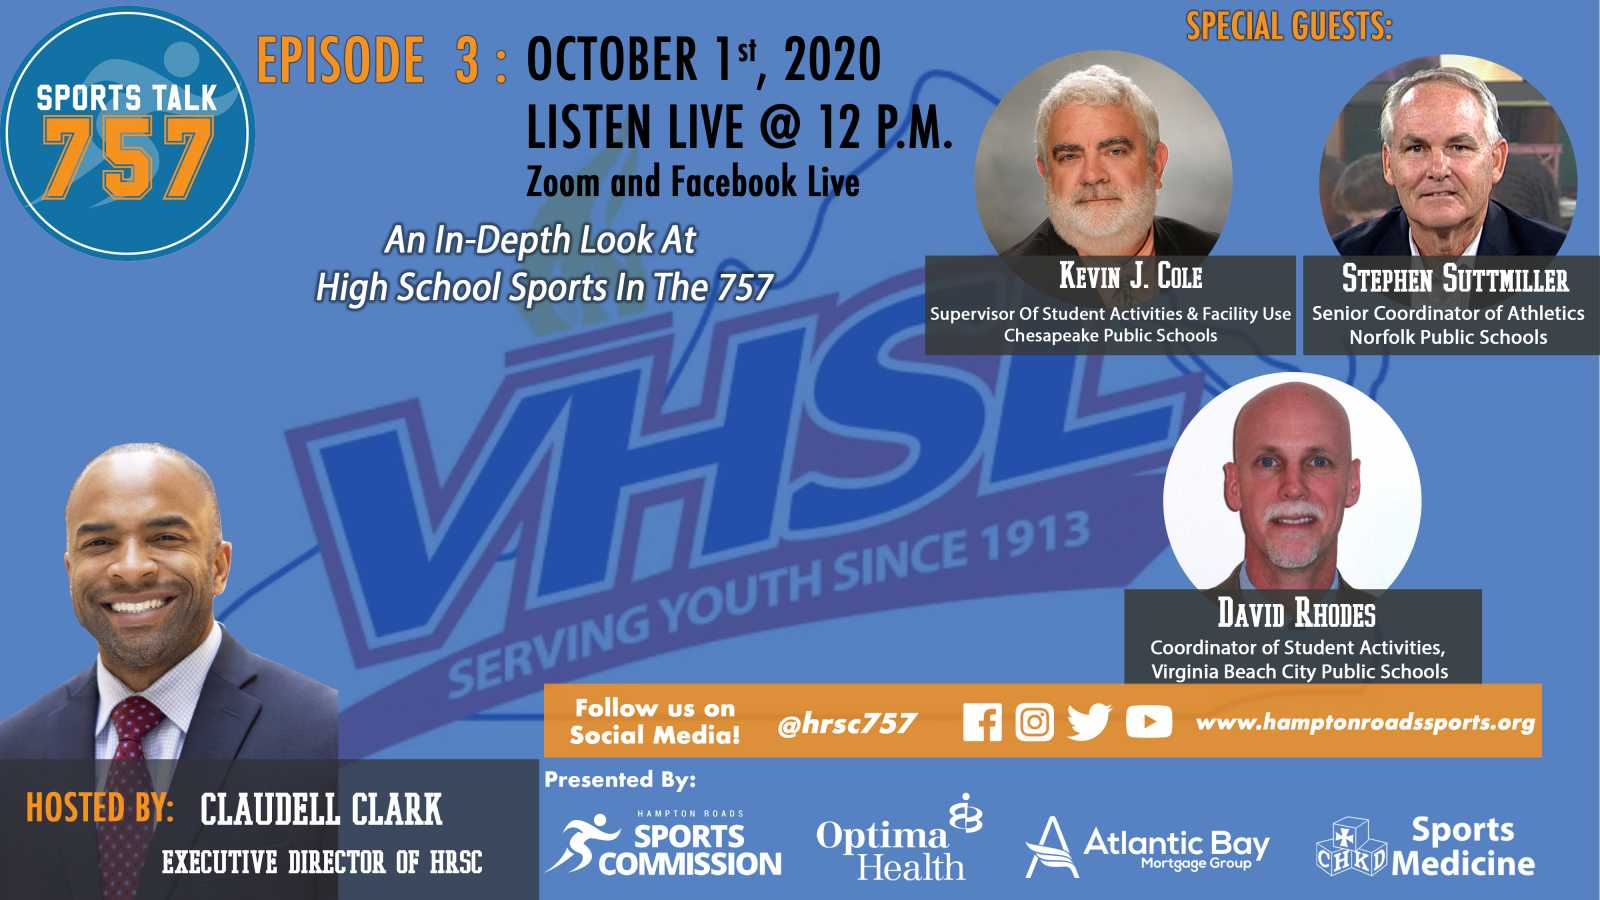 SportsTalk 757 Episode 03: October 1, 2020 Featuring Area High School Administrators